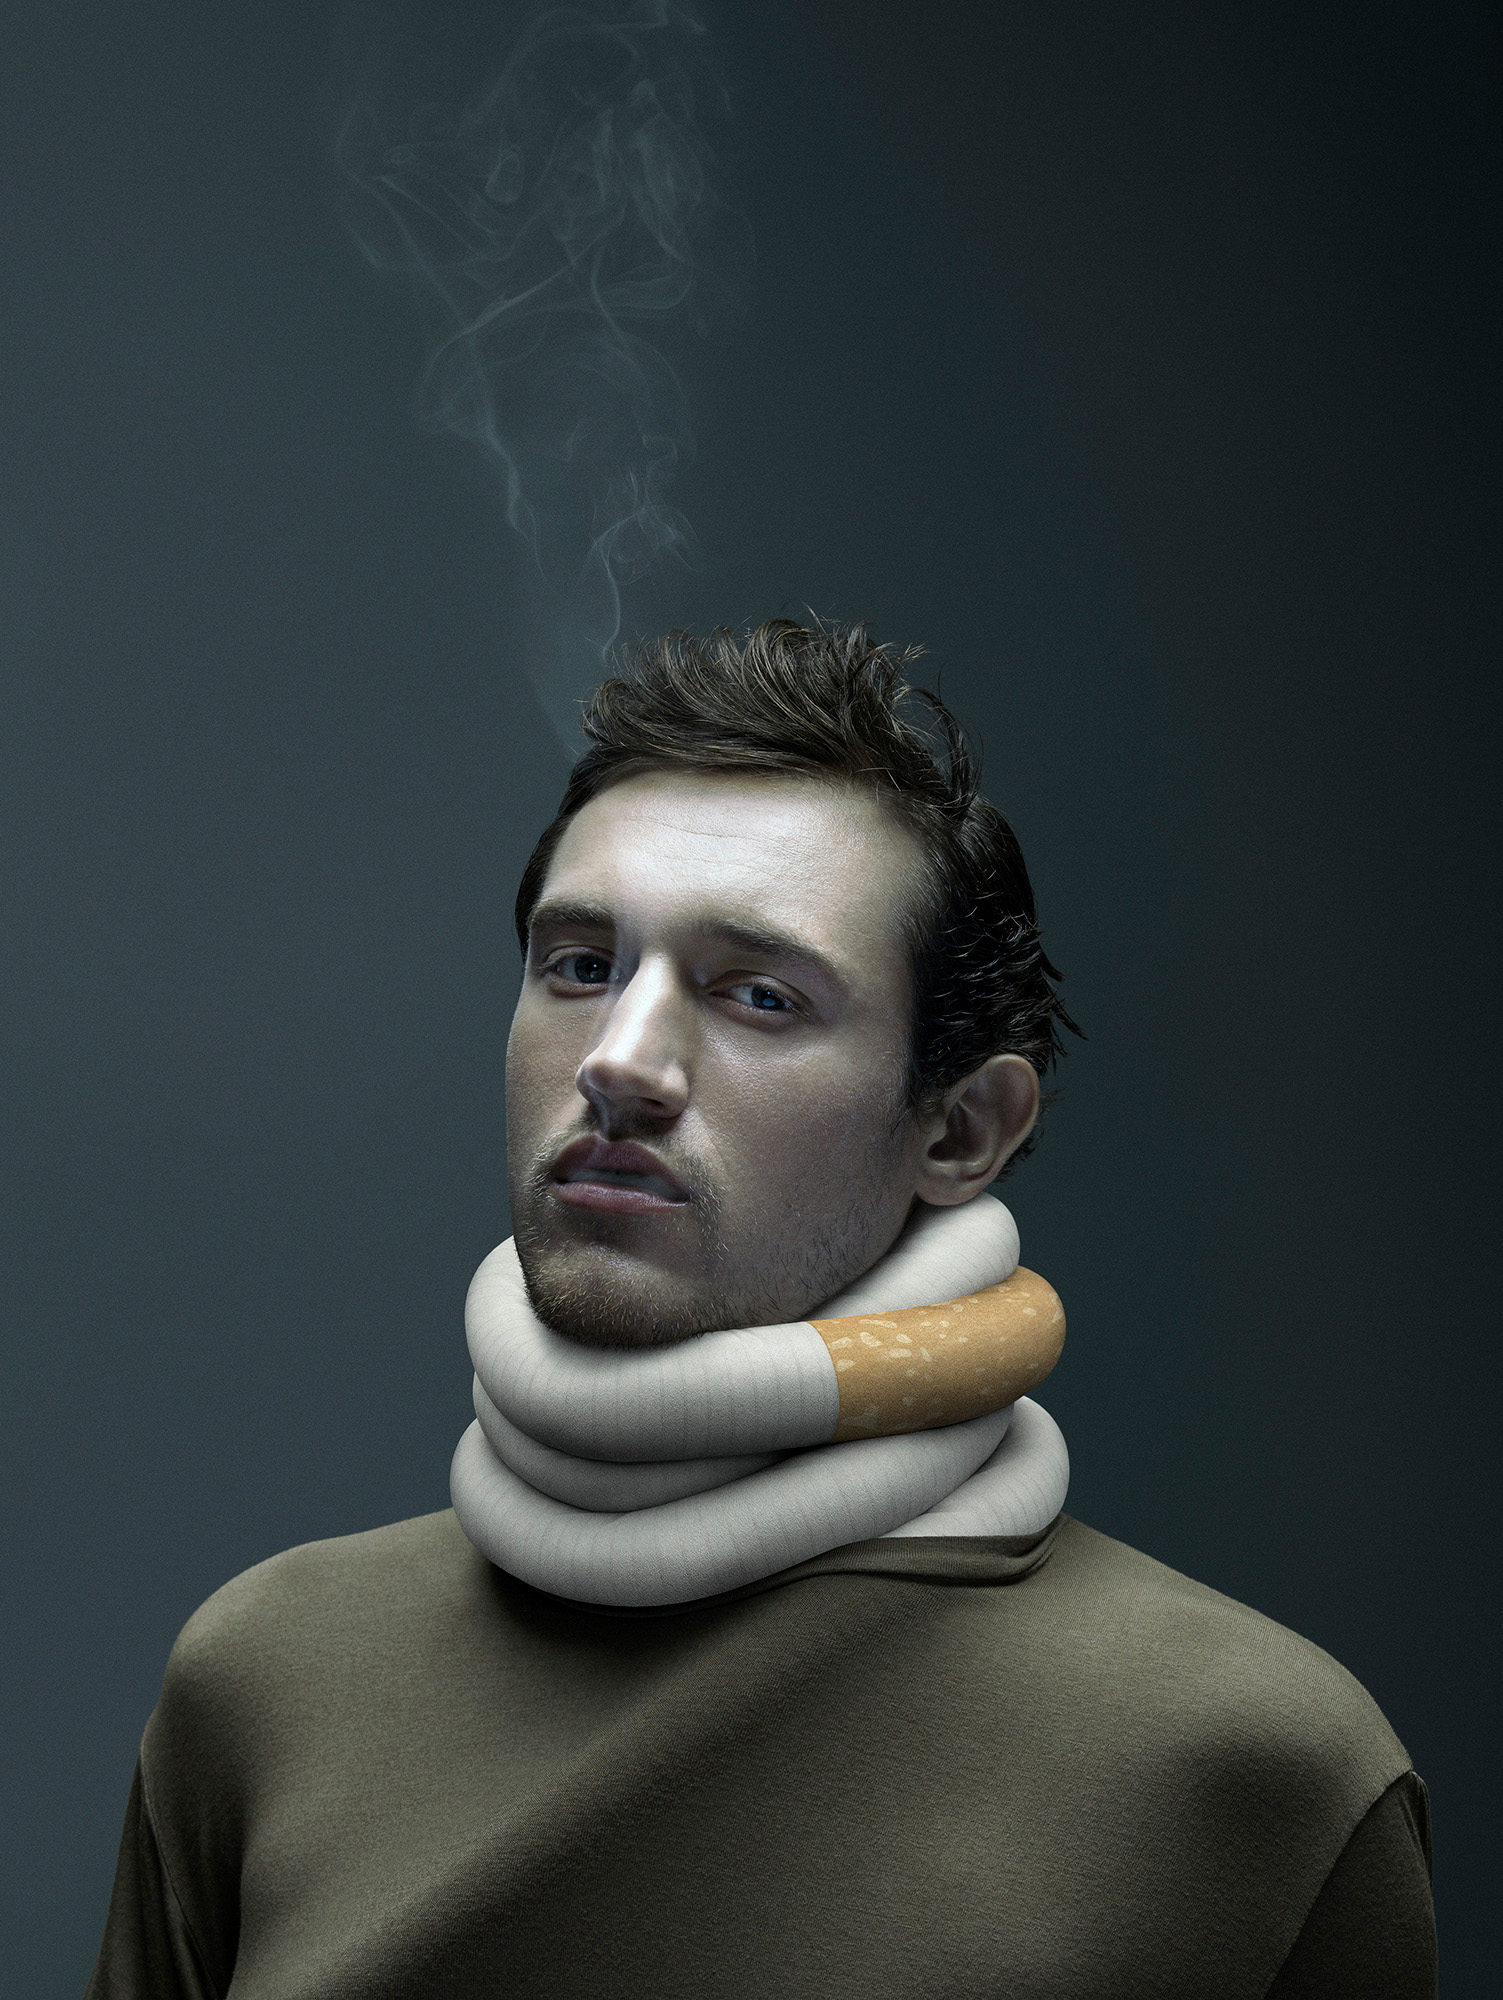 LA DÉPENDANCE À LA NICOTINE VOUS TIENT  Client: De Facto Agence: K72 Création: Simon Beaudry, Sébastien Deland Photo: Philippe Richelet 3D: Santiago Menghini Retouche photo: Claude Lafrance   Prix 2017 Applied Arts • Advertising photography Applied Arts • Public service photography Applied Arts • Young blood photography